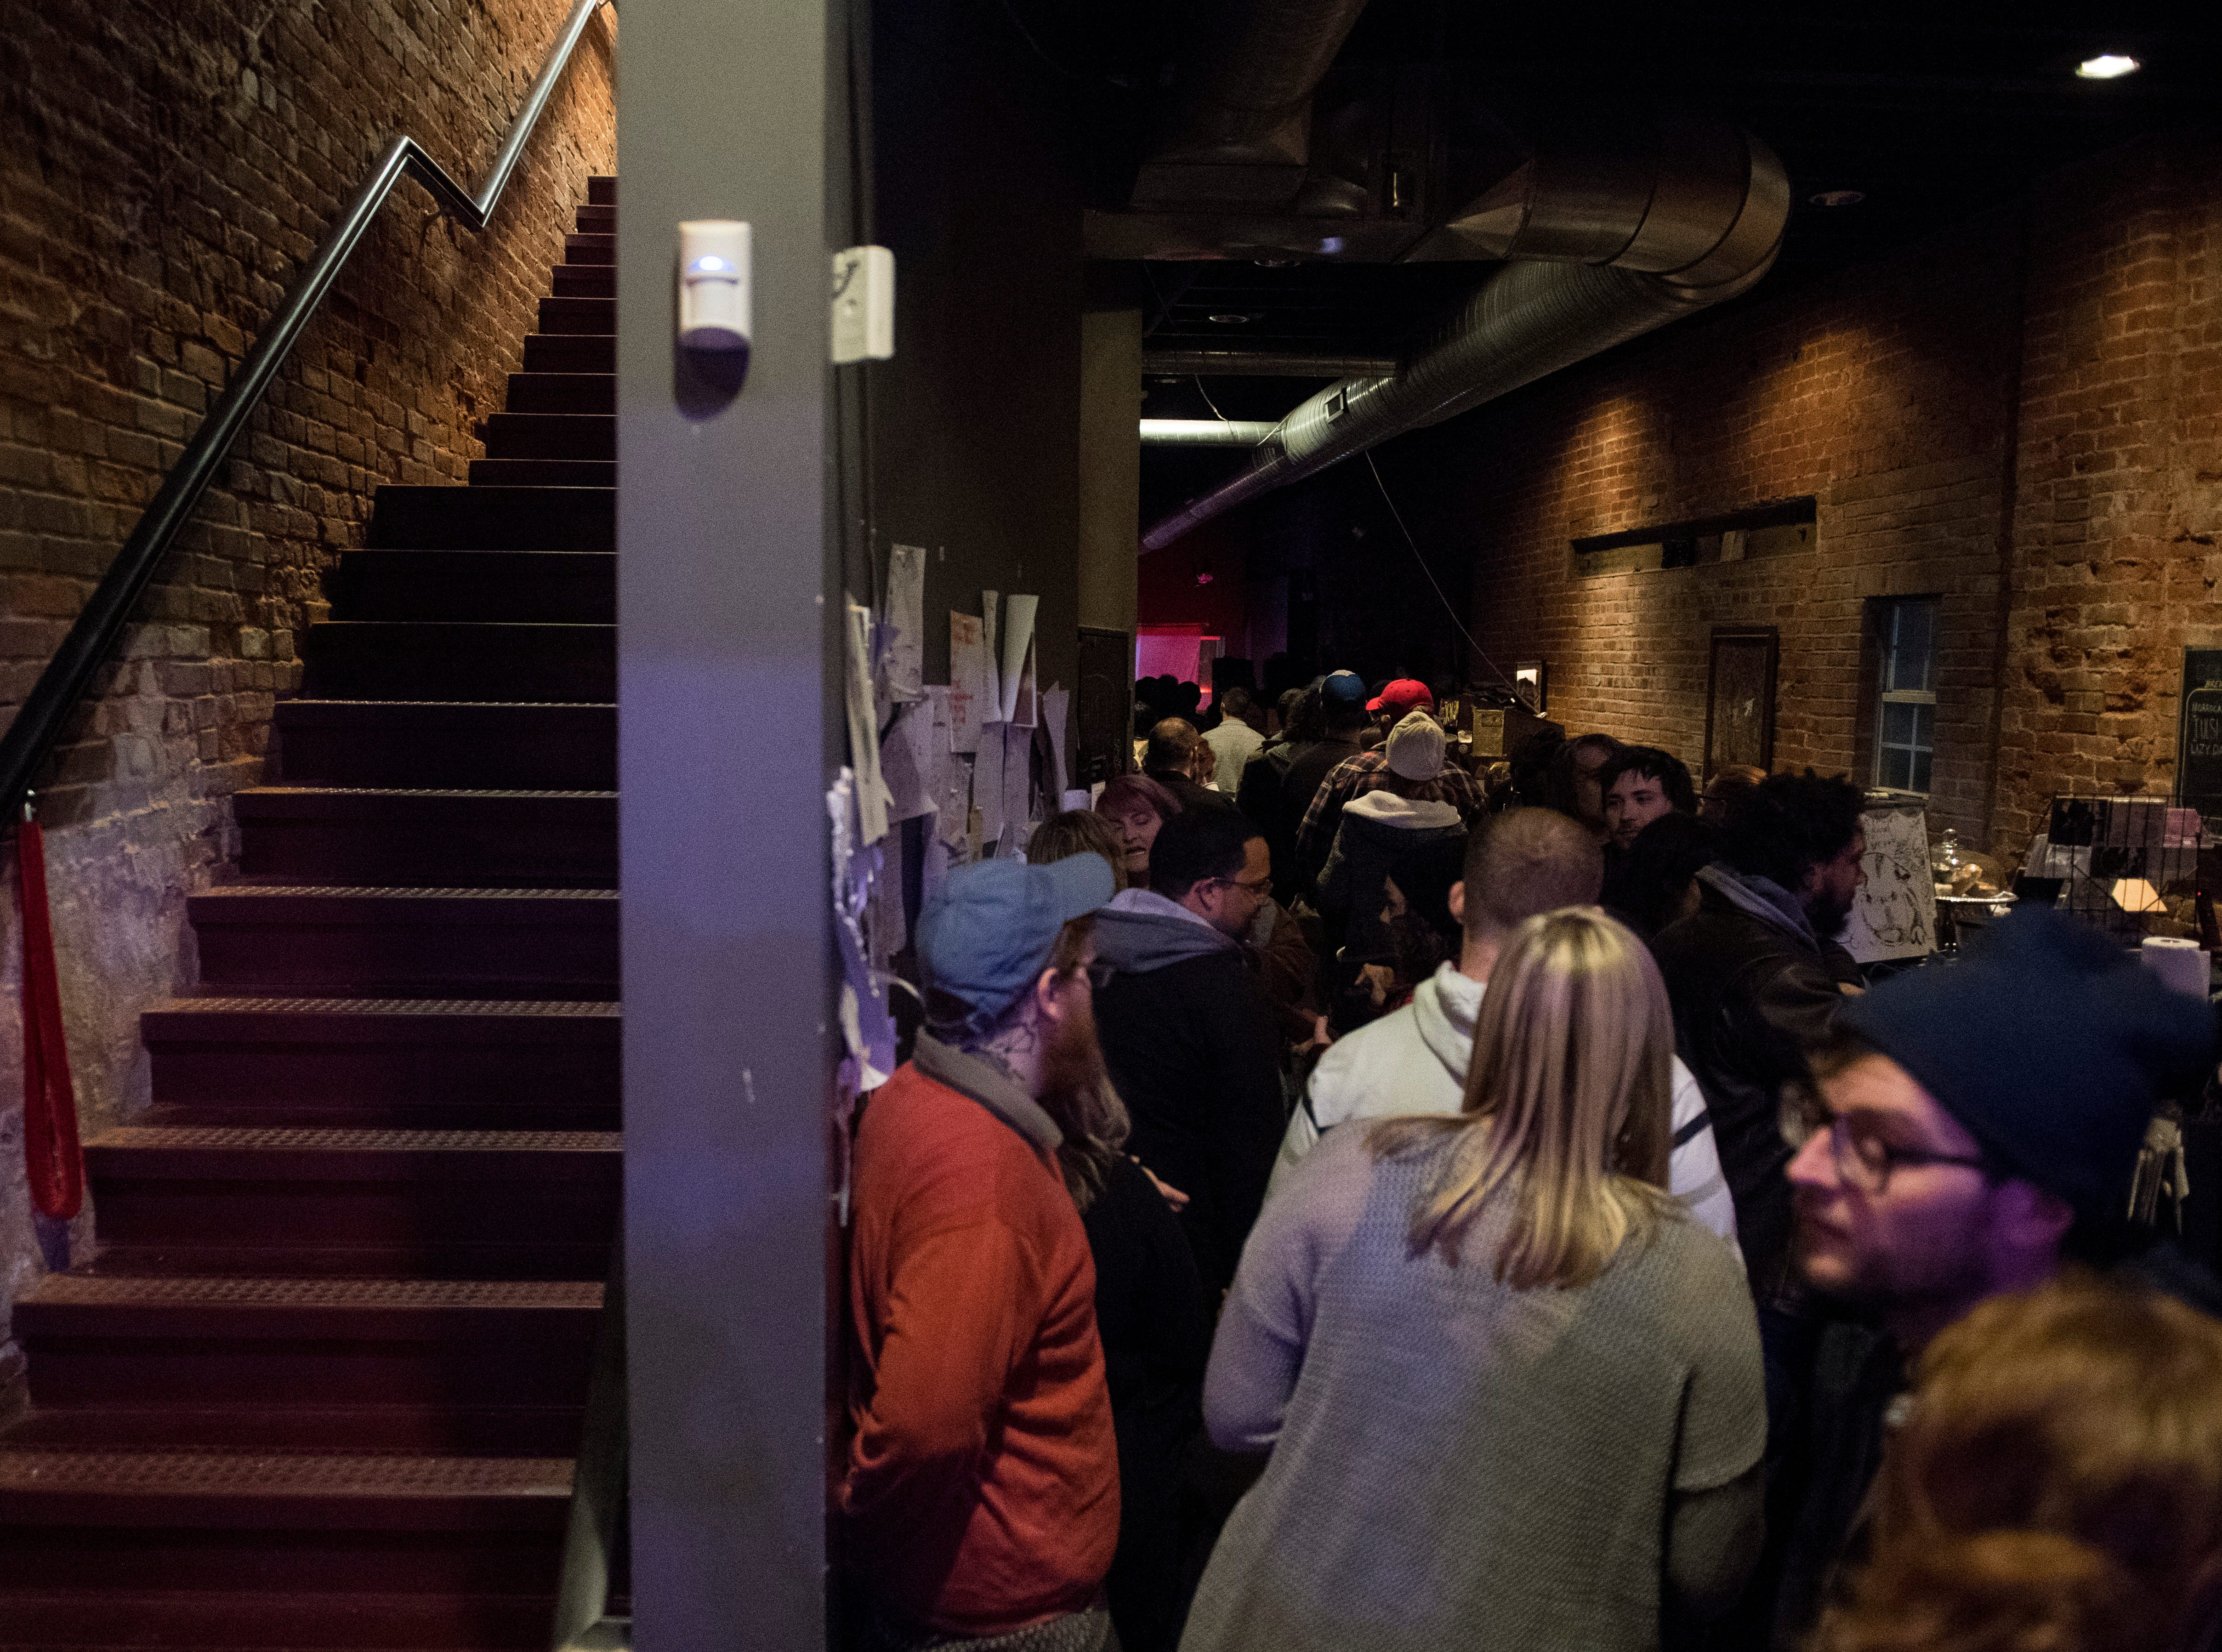 The crowd fills the room during the Farewell Weekend show at PG. PG -- a cafe, art and music venue -- opened March 15, 2013, and has served as a gathering place for the creative community in Evansville. Their final day open is Monday, Dec. 31, 2018.